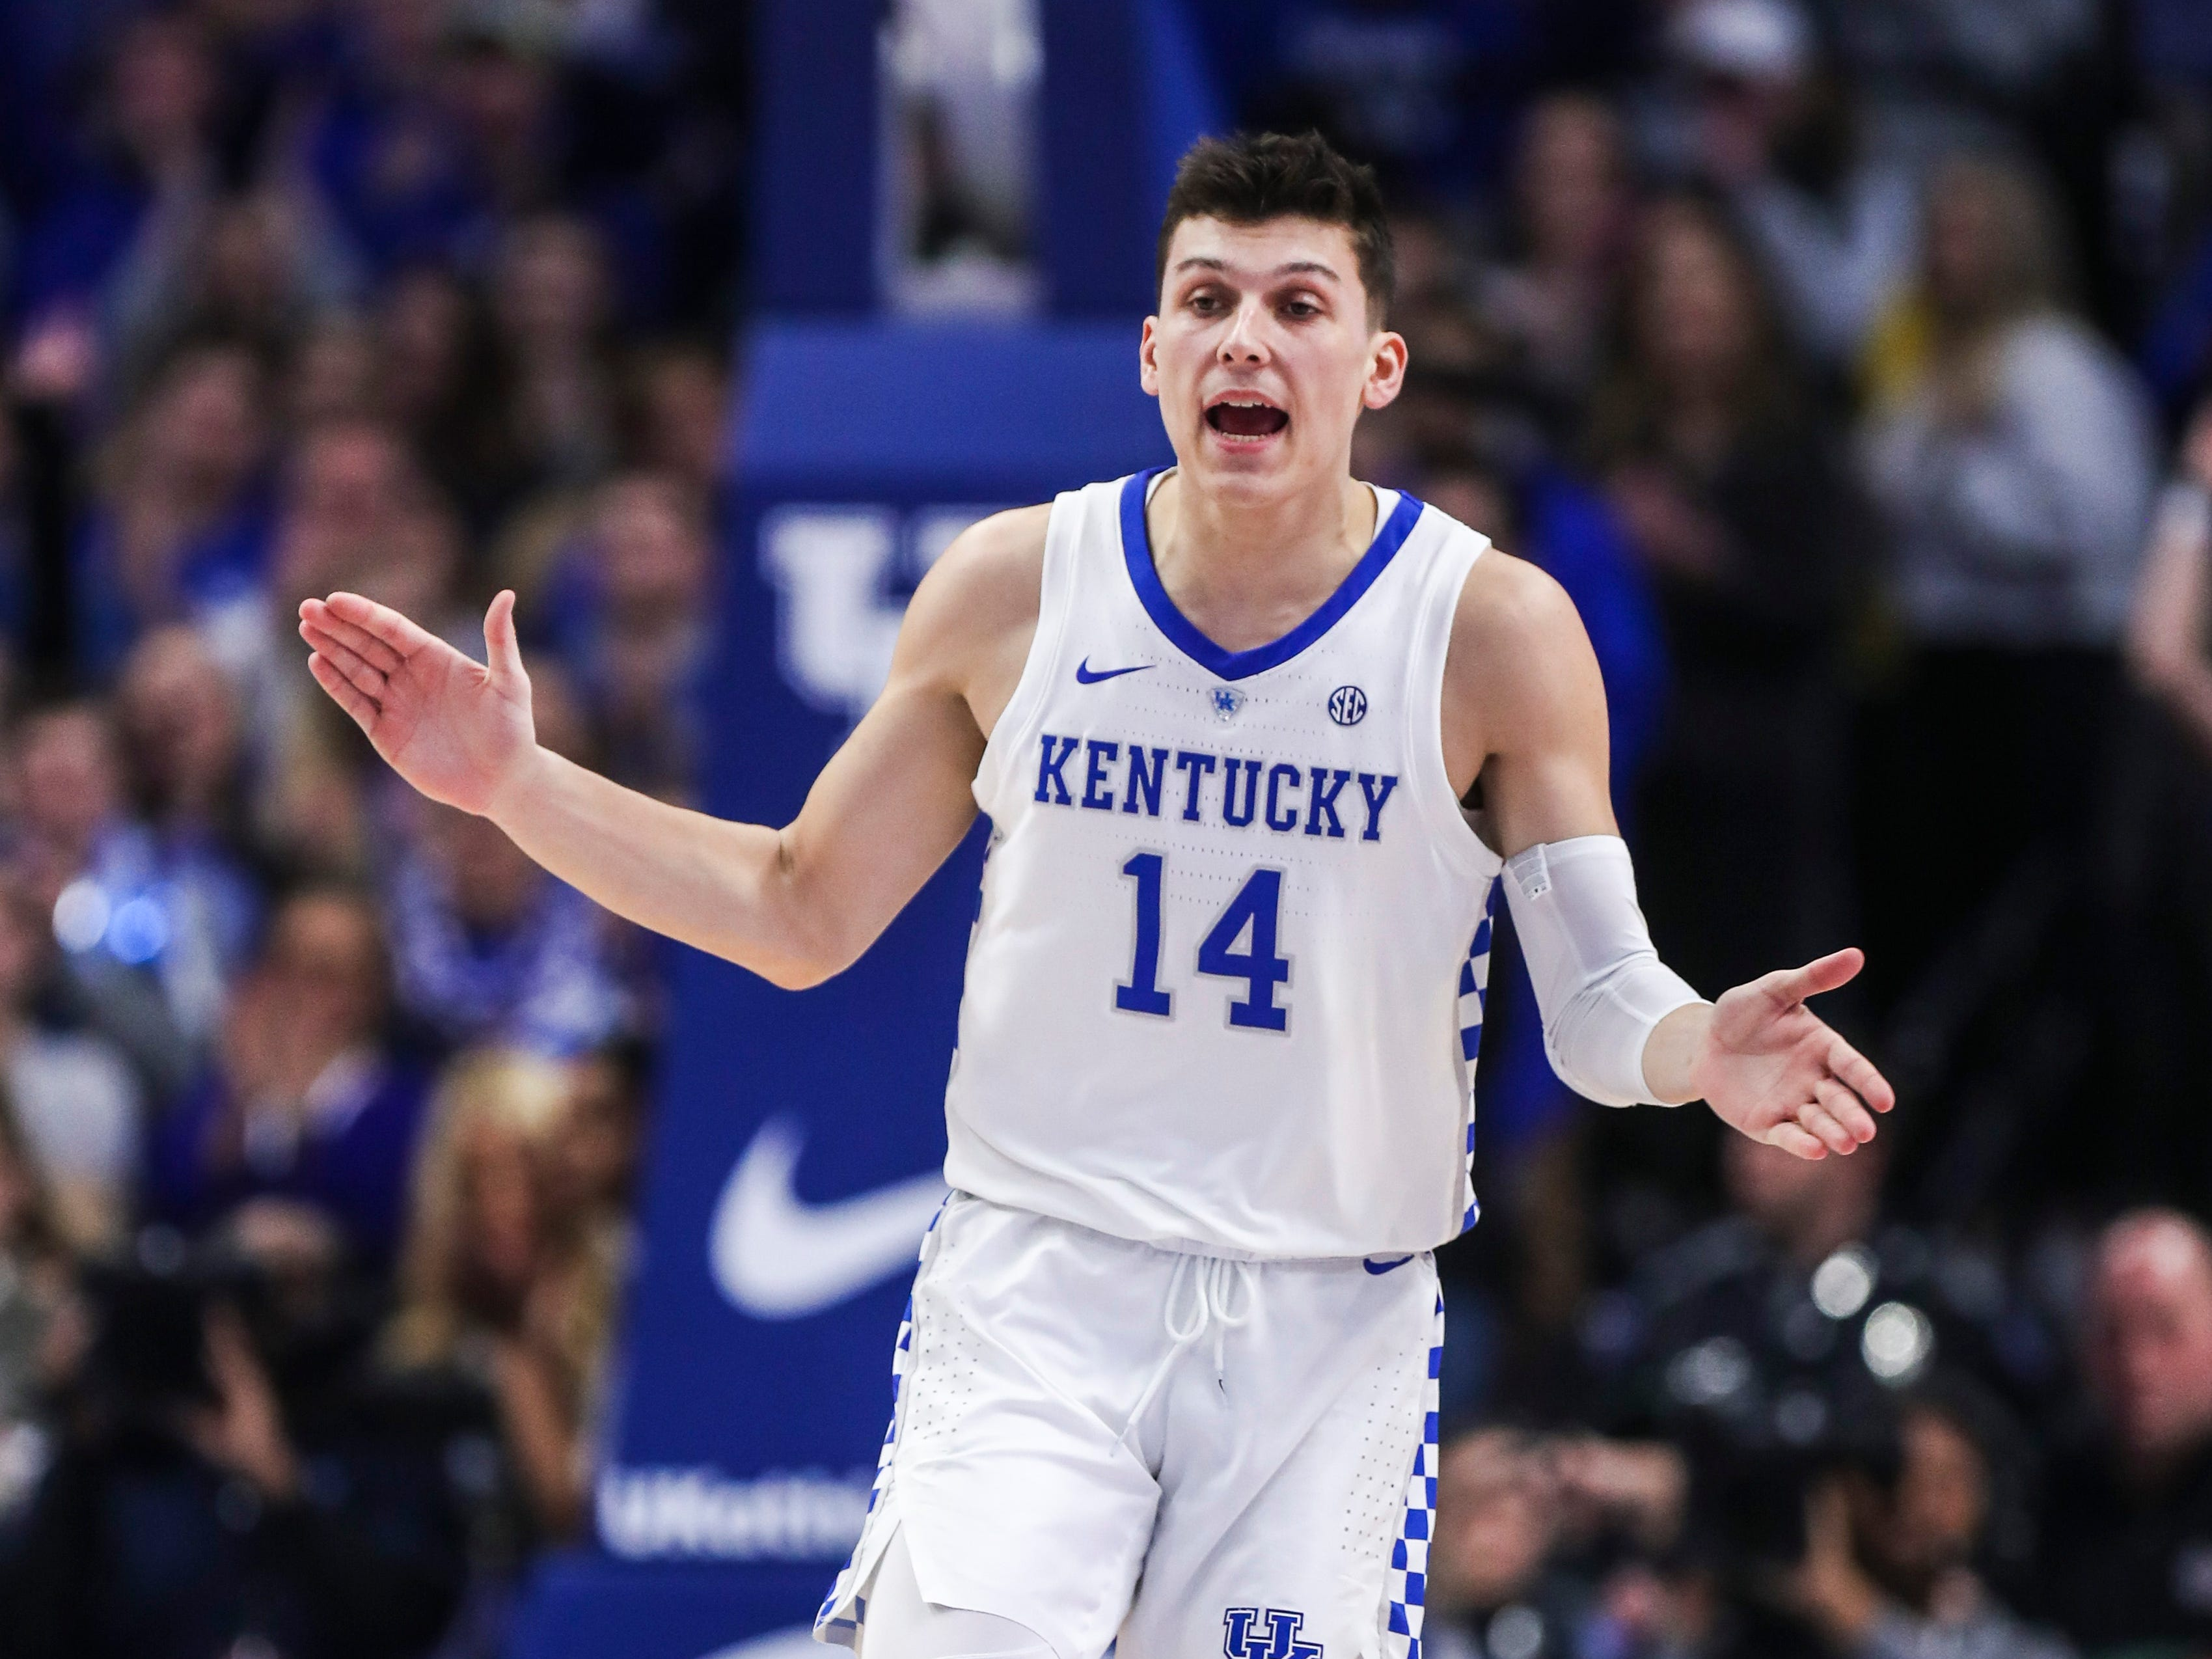 Kentucky's Tyler Herro celebrates after hitting a three-point shot against Mississippi State Tuesday night at Rupp Arena in Lexington. January 22, 2019